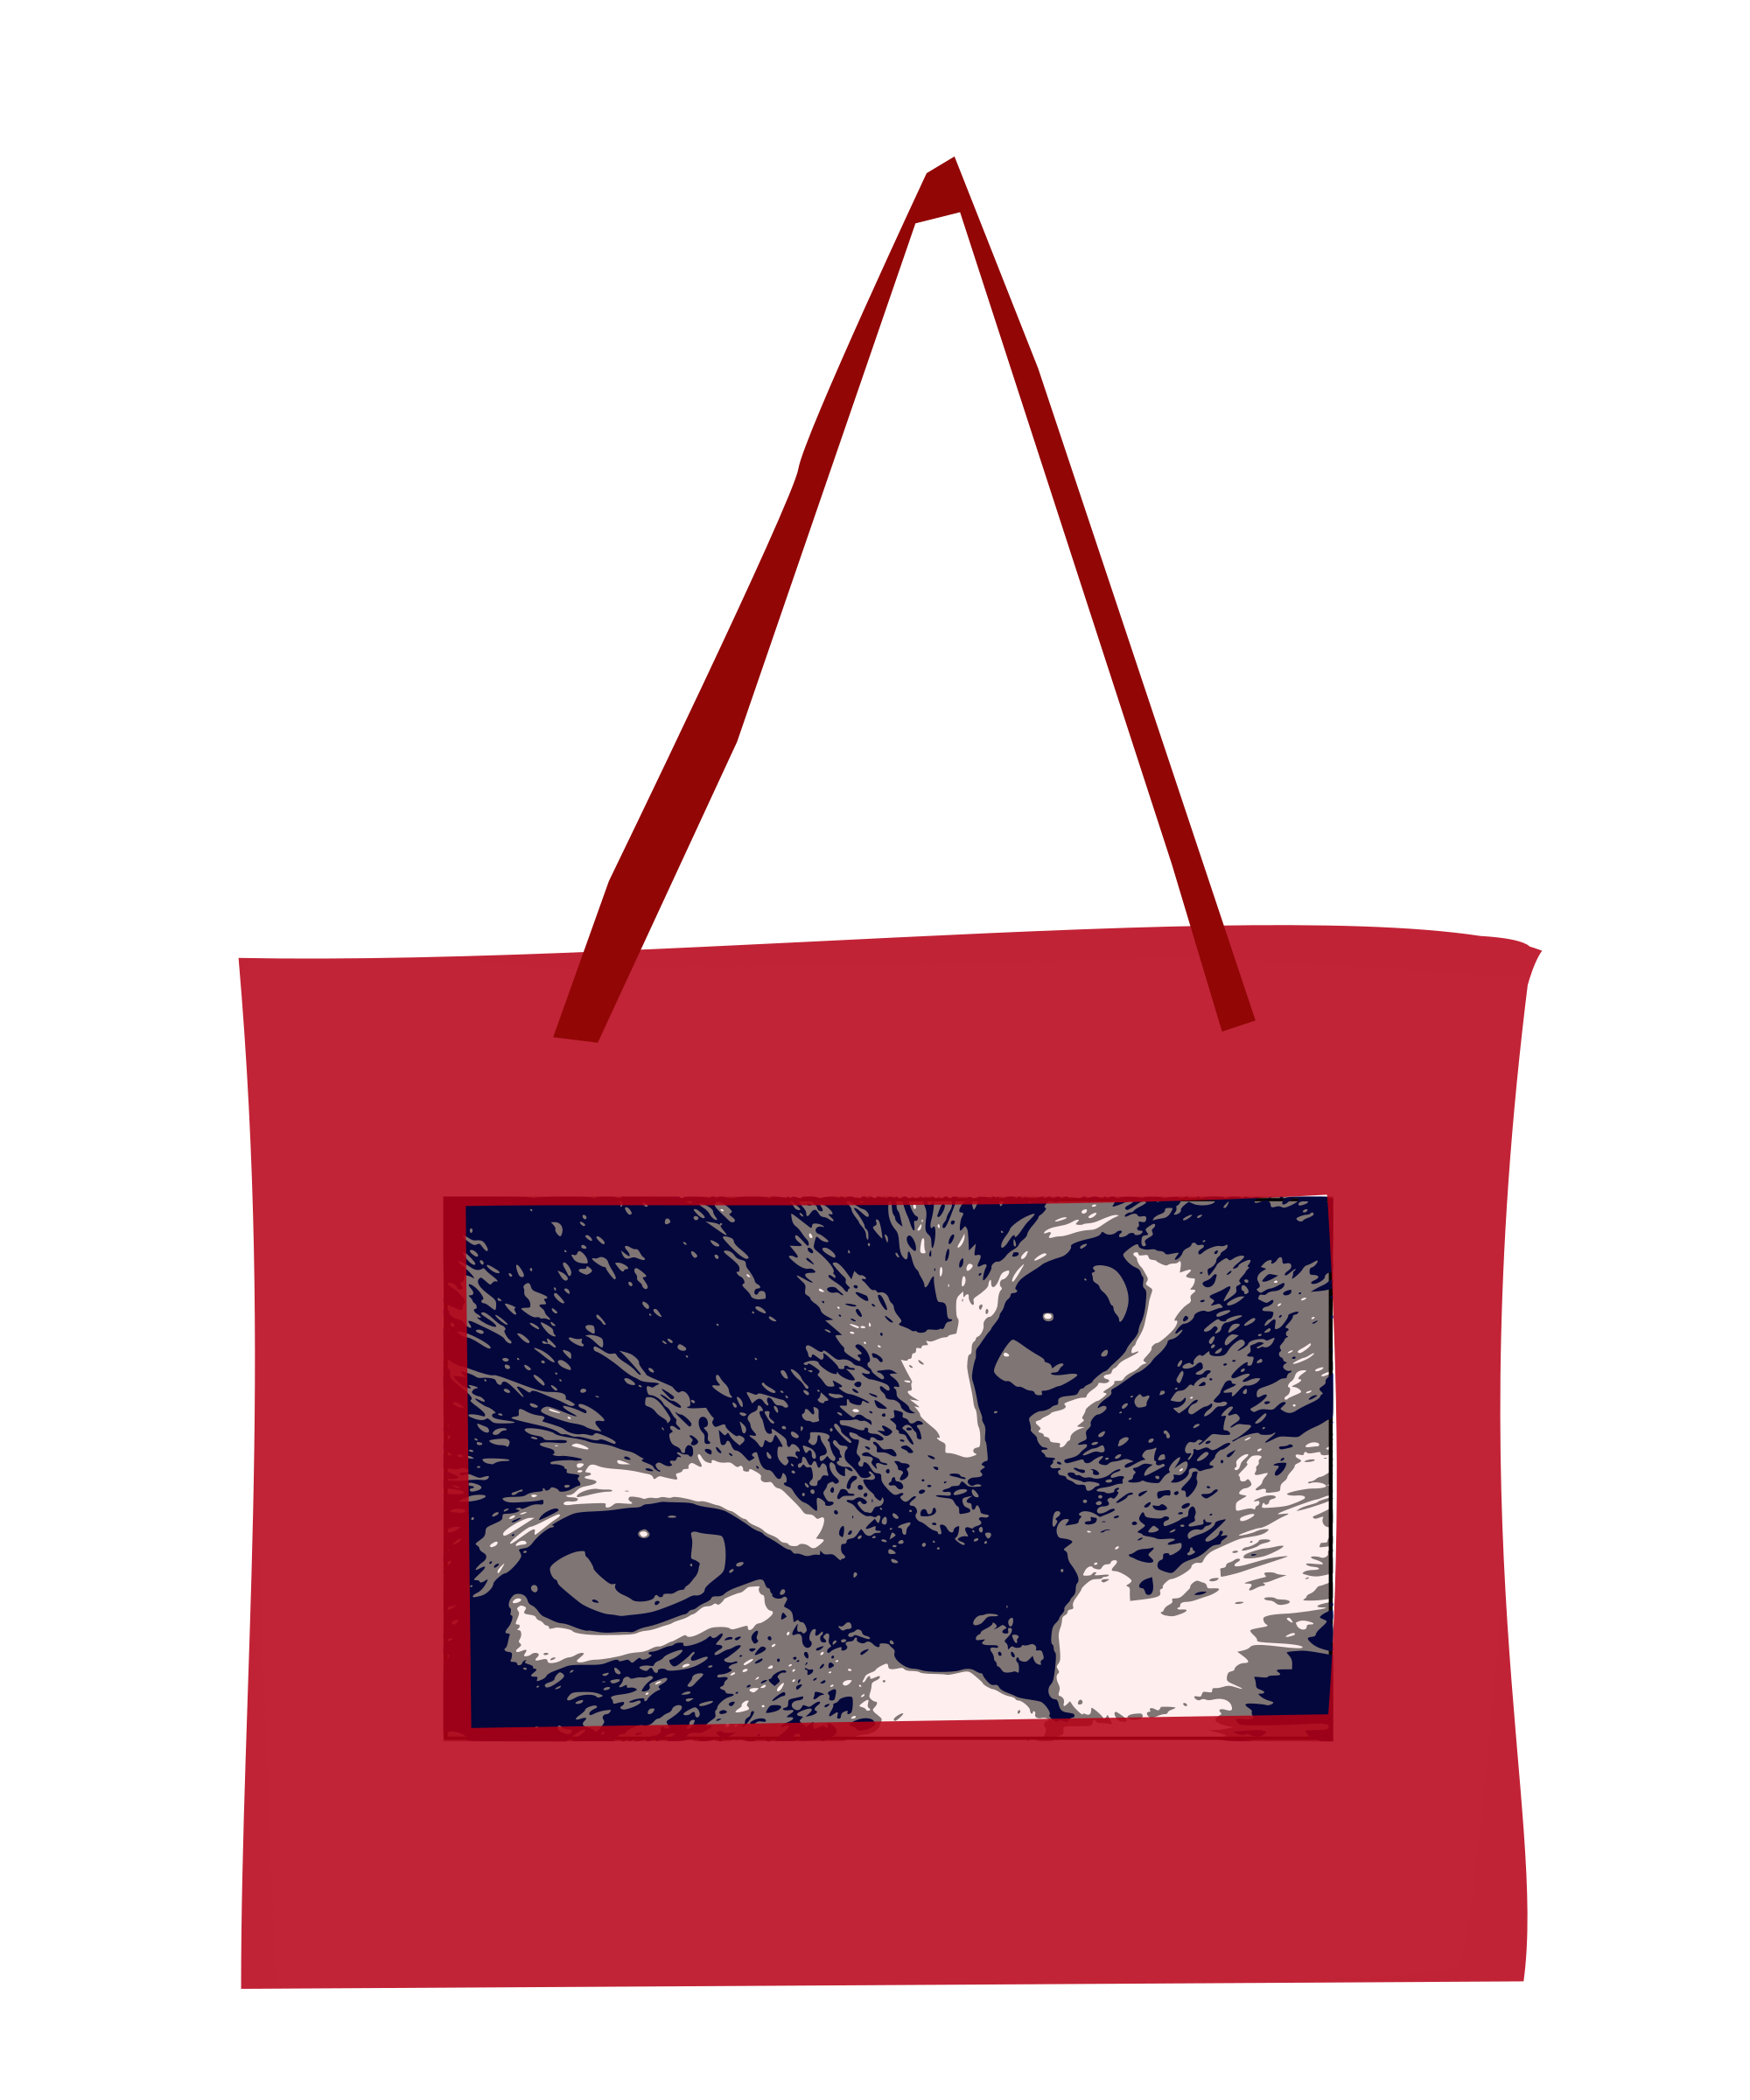 Tote bag-01 by yamachem